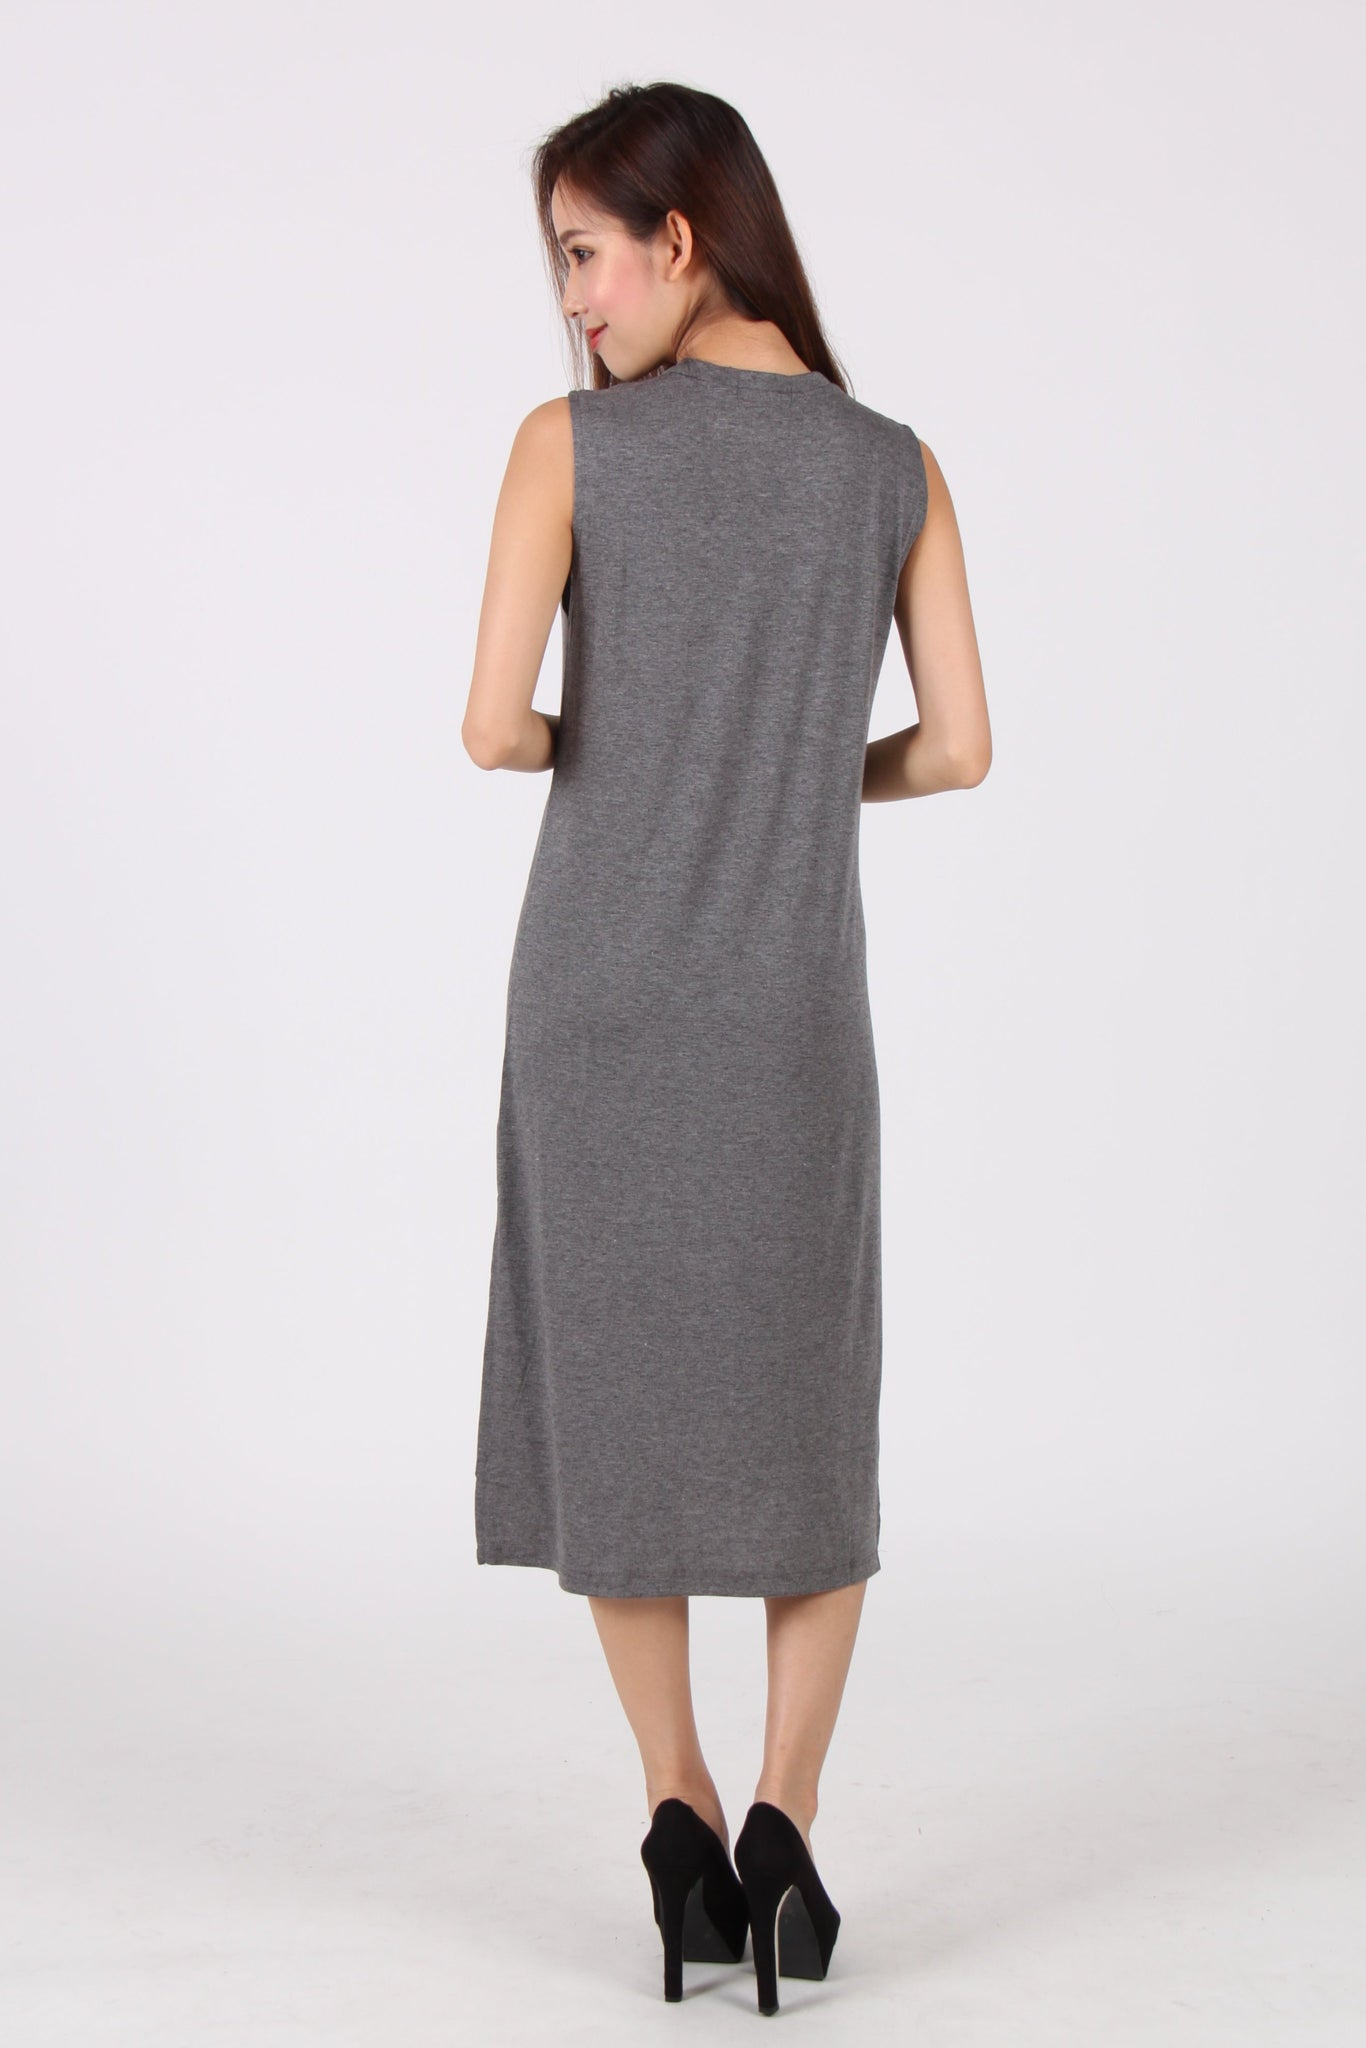 Basic Sleeveless Side Slit Midi Dress in Dark Grey